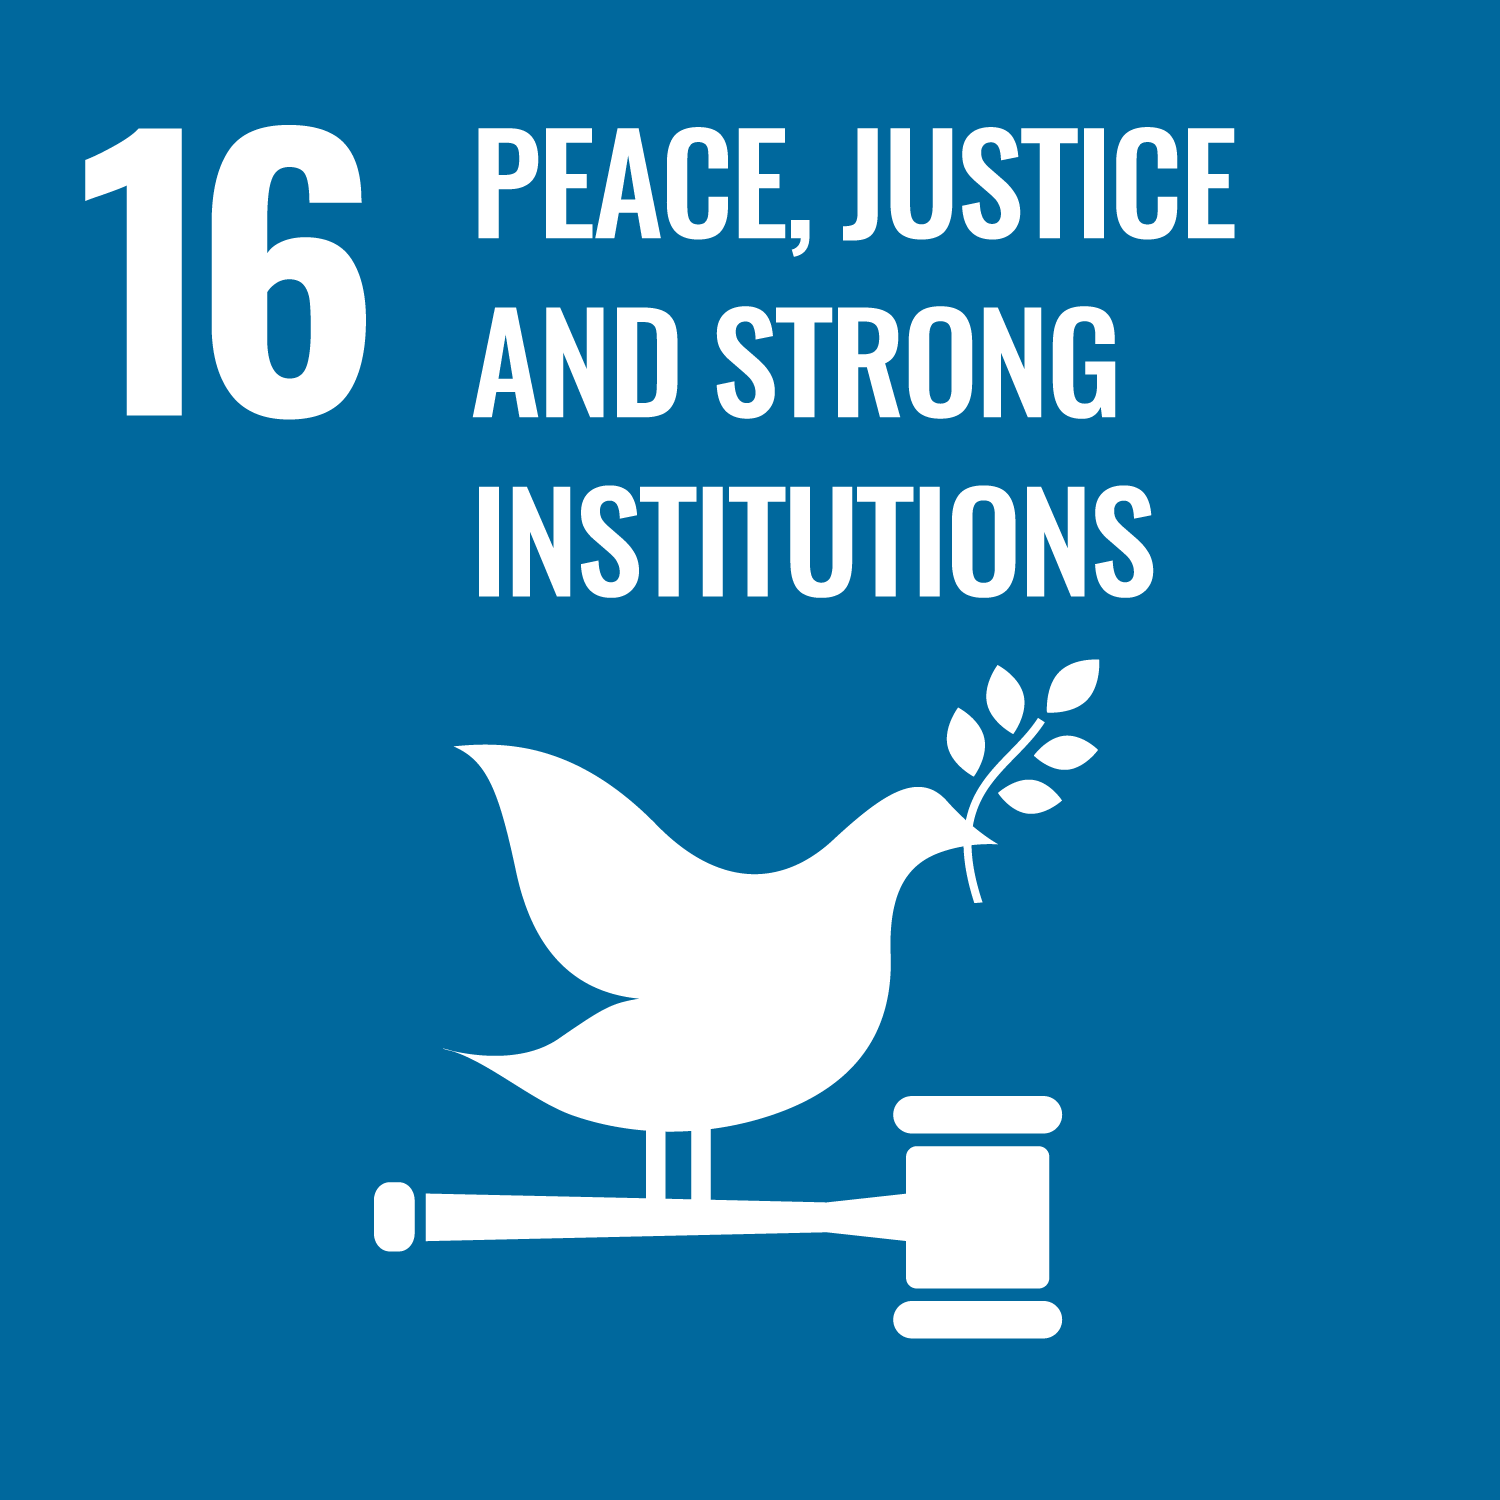 Goal 16: Peace, Justice, & Strong Institutions